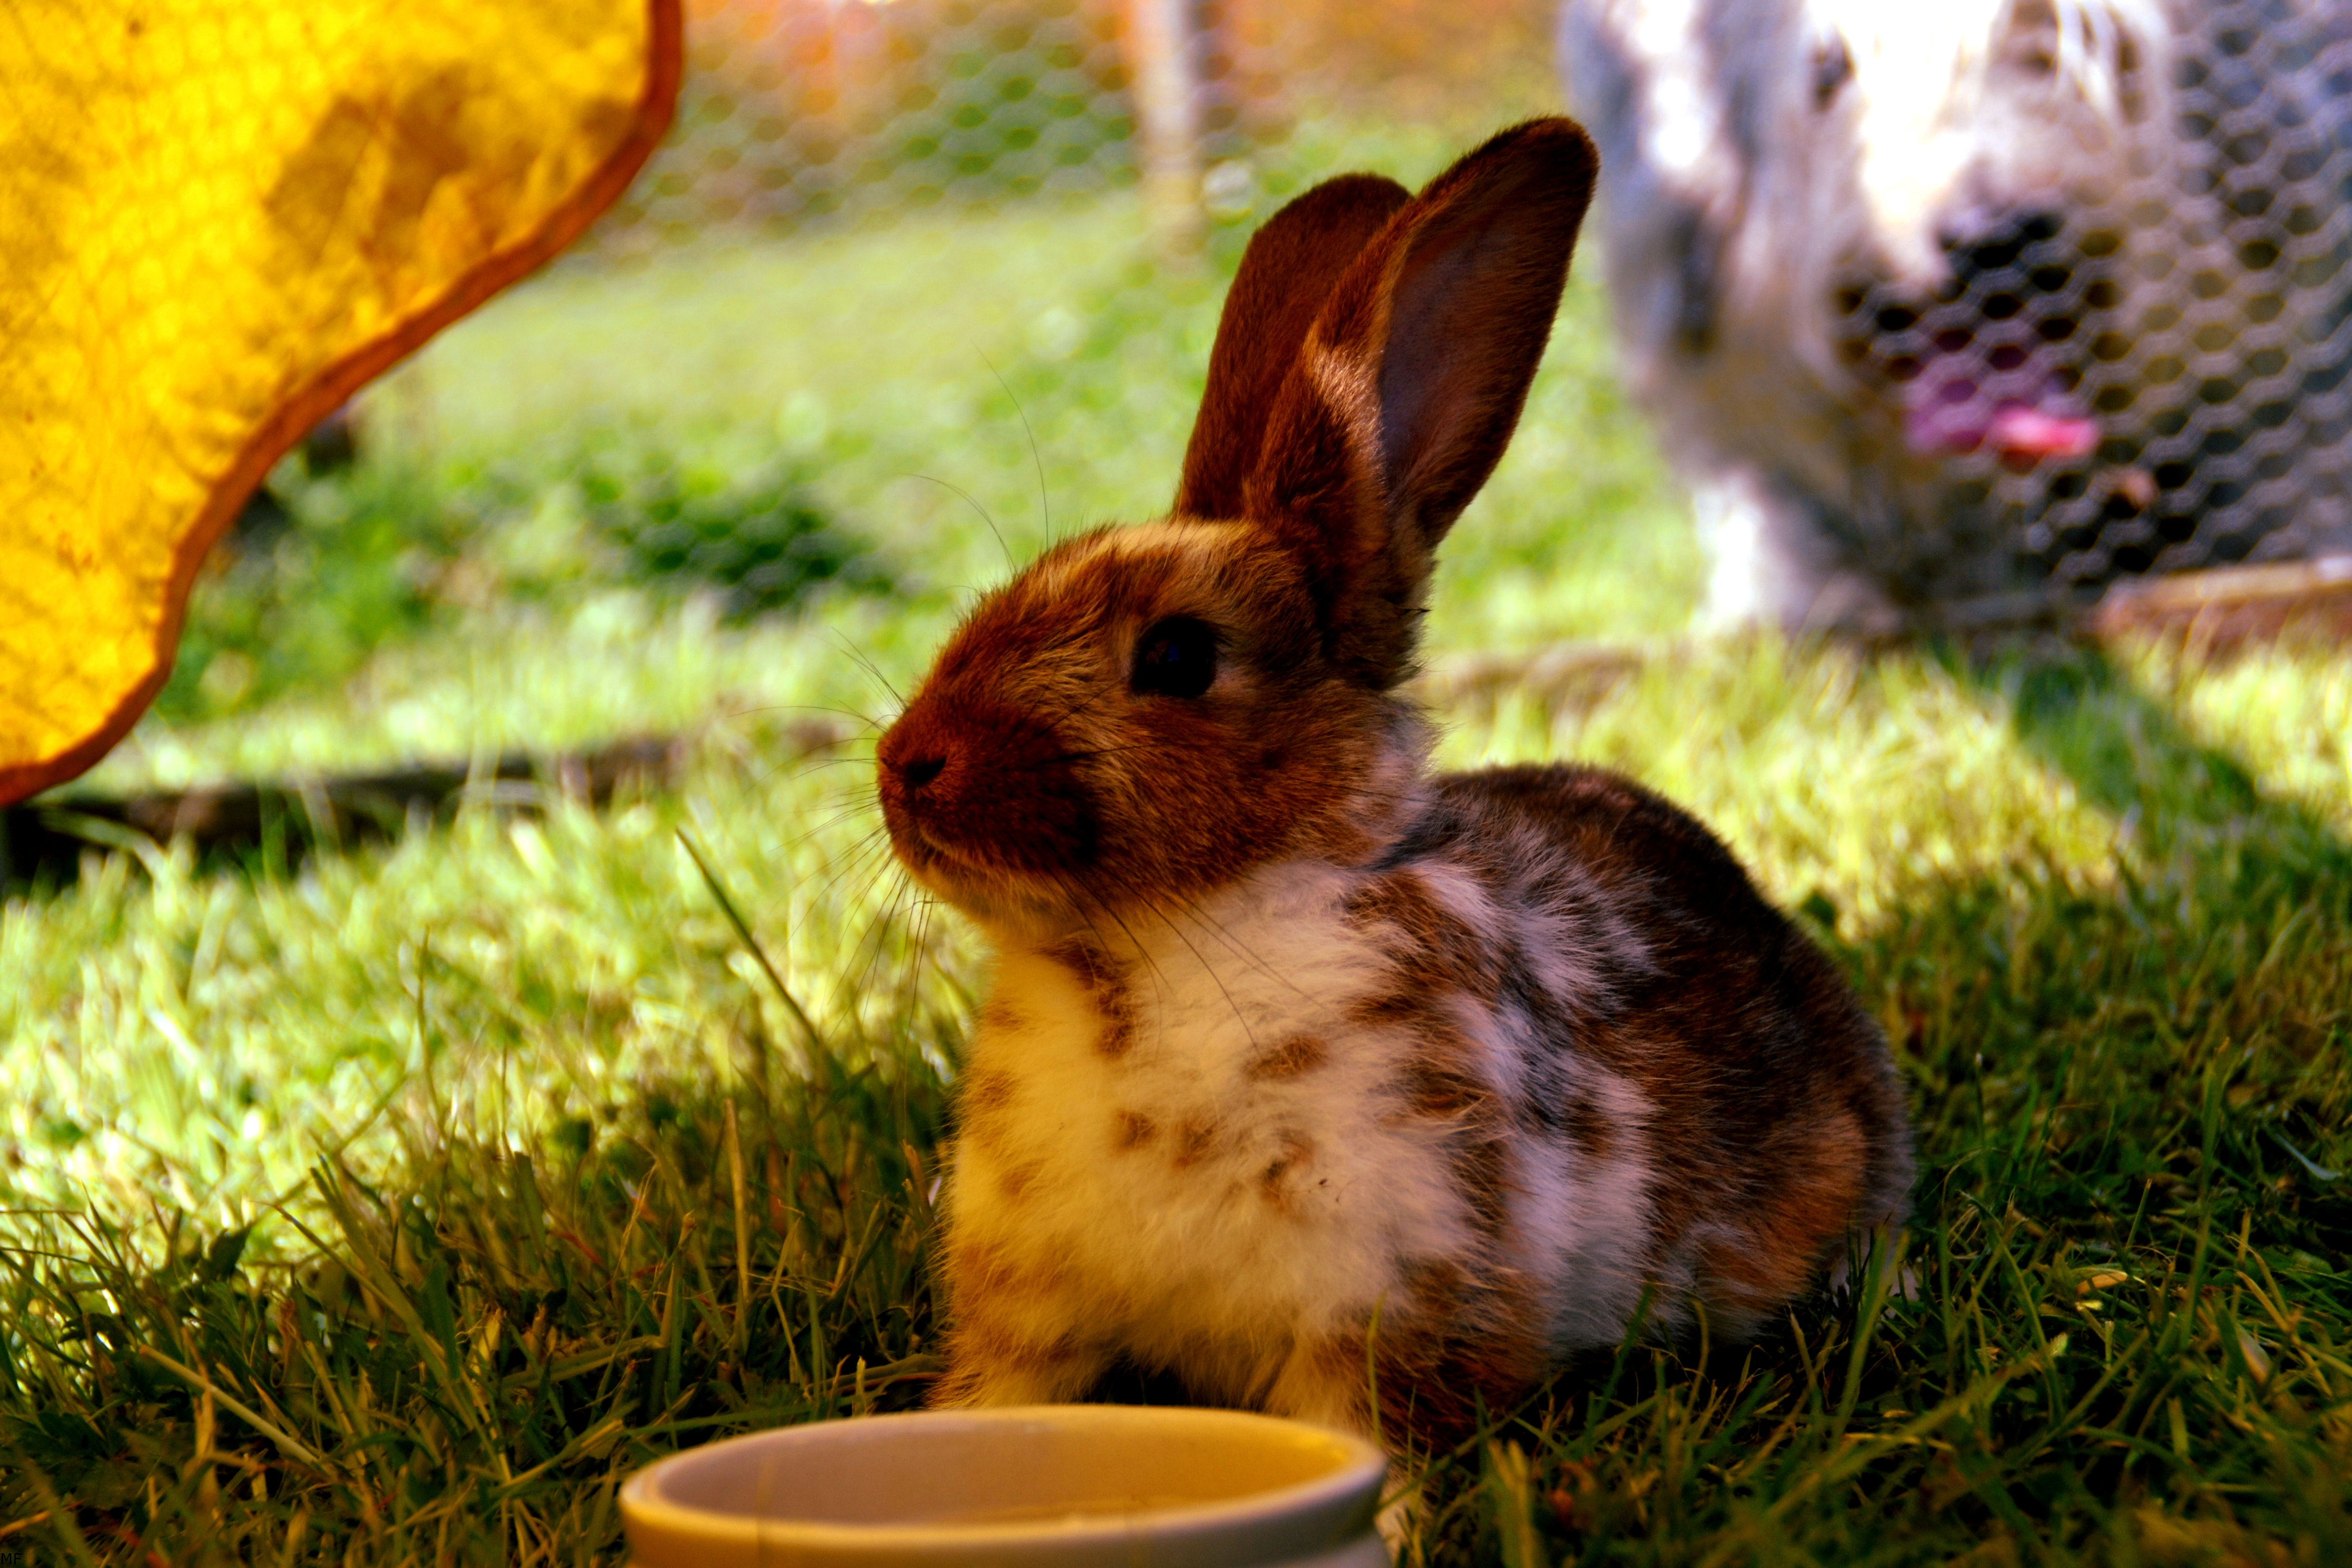 An in-depth review of the best rabbit pellets available in 2019.